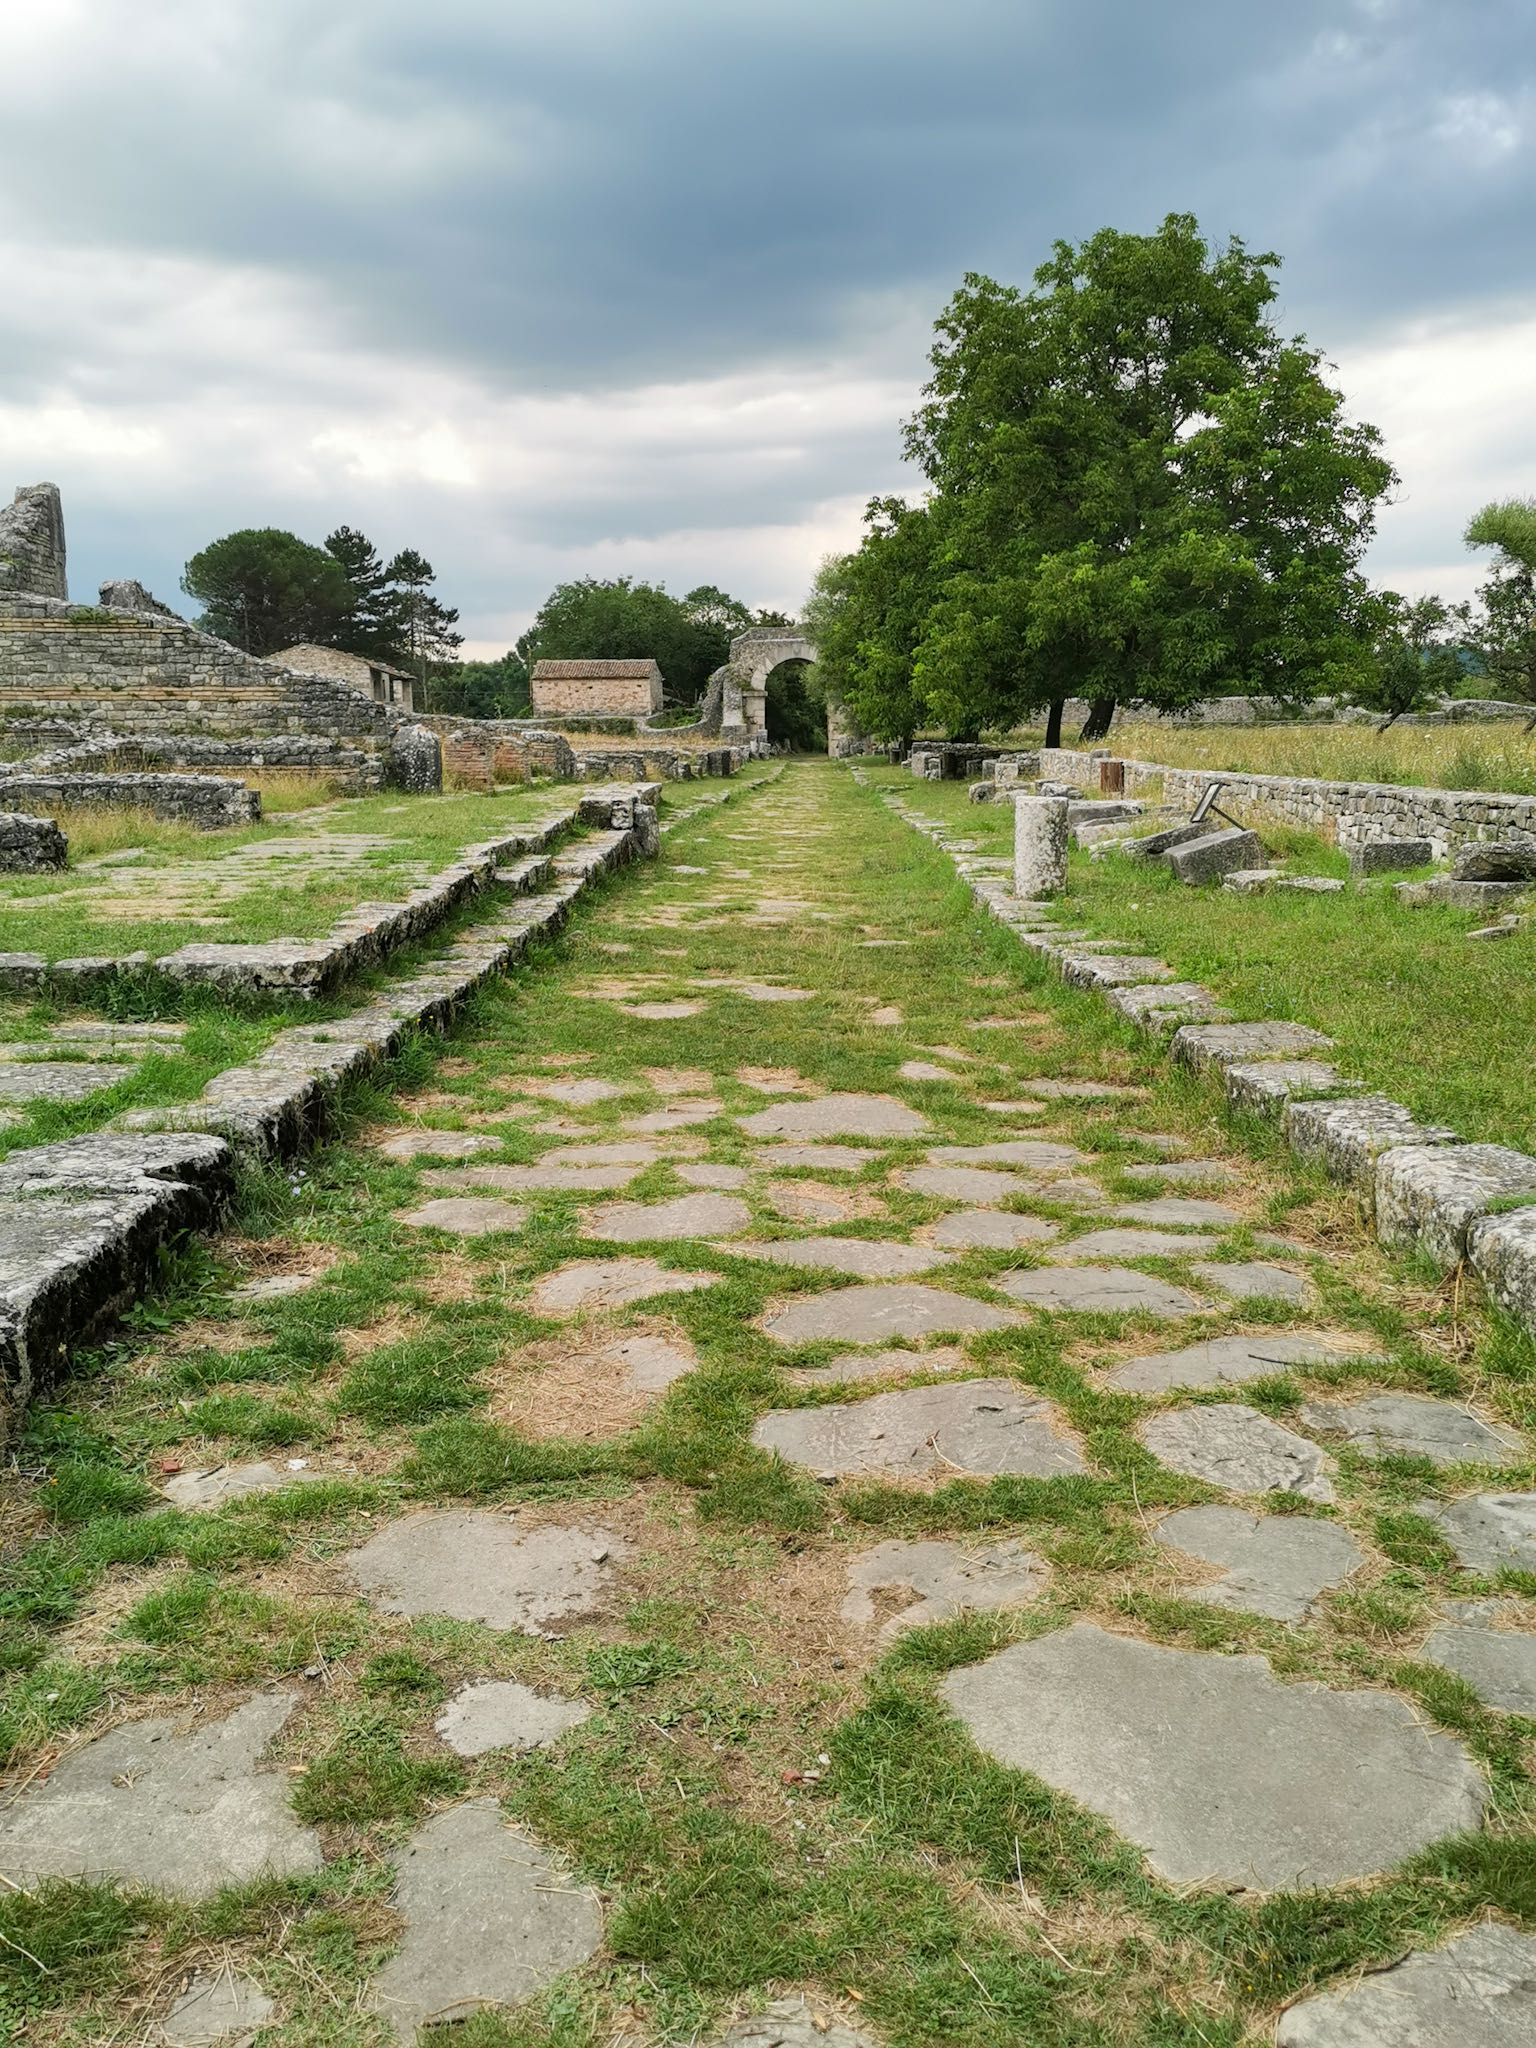 Altilia archeological site in Molise